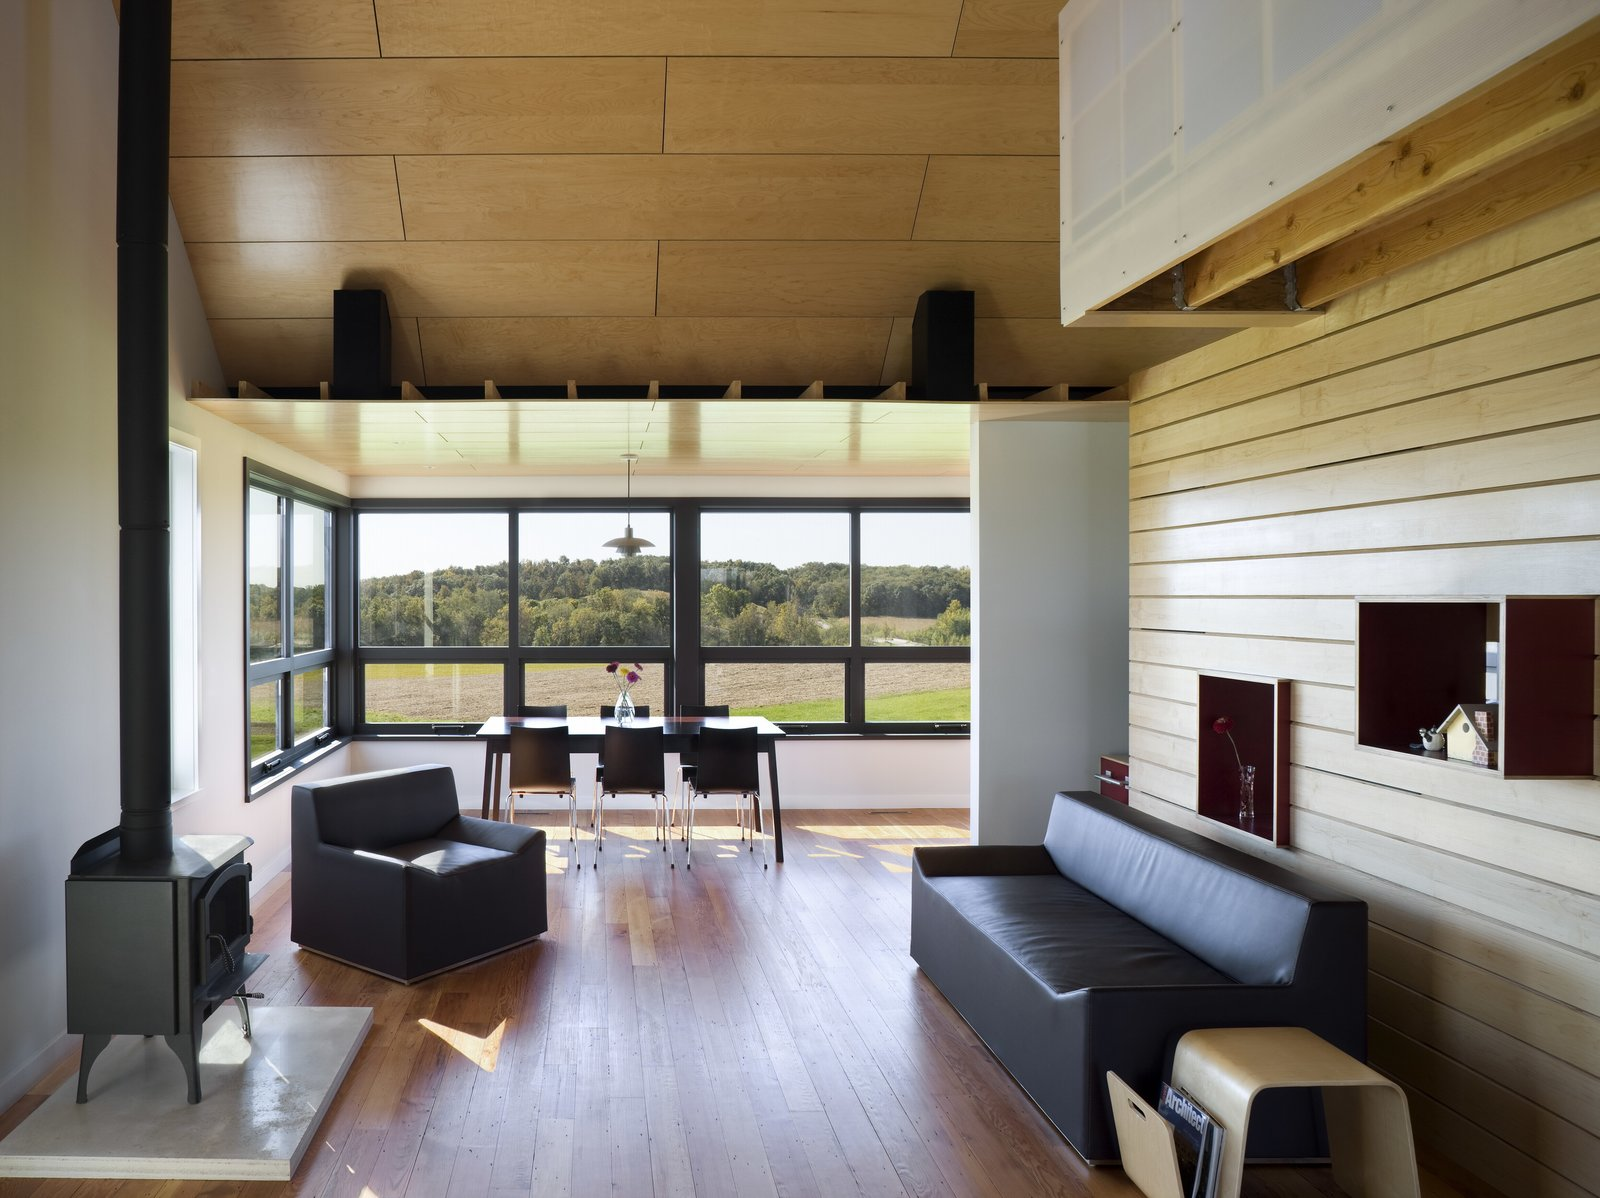 Living Room, Wood Burning Fireplace, Chair, Sofa, and Medium Hardwood Floor Yum Yum Farm in Iowa  Photo 6 of 11 in Dwell's Top 10 Design Pros of 2017 from Yum Yum Farm